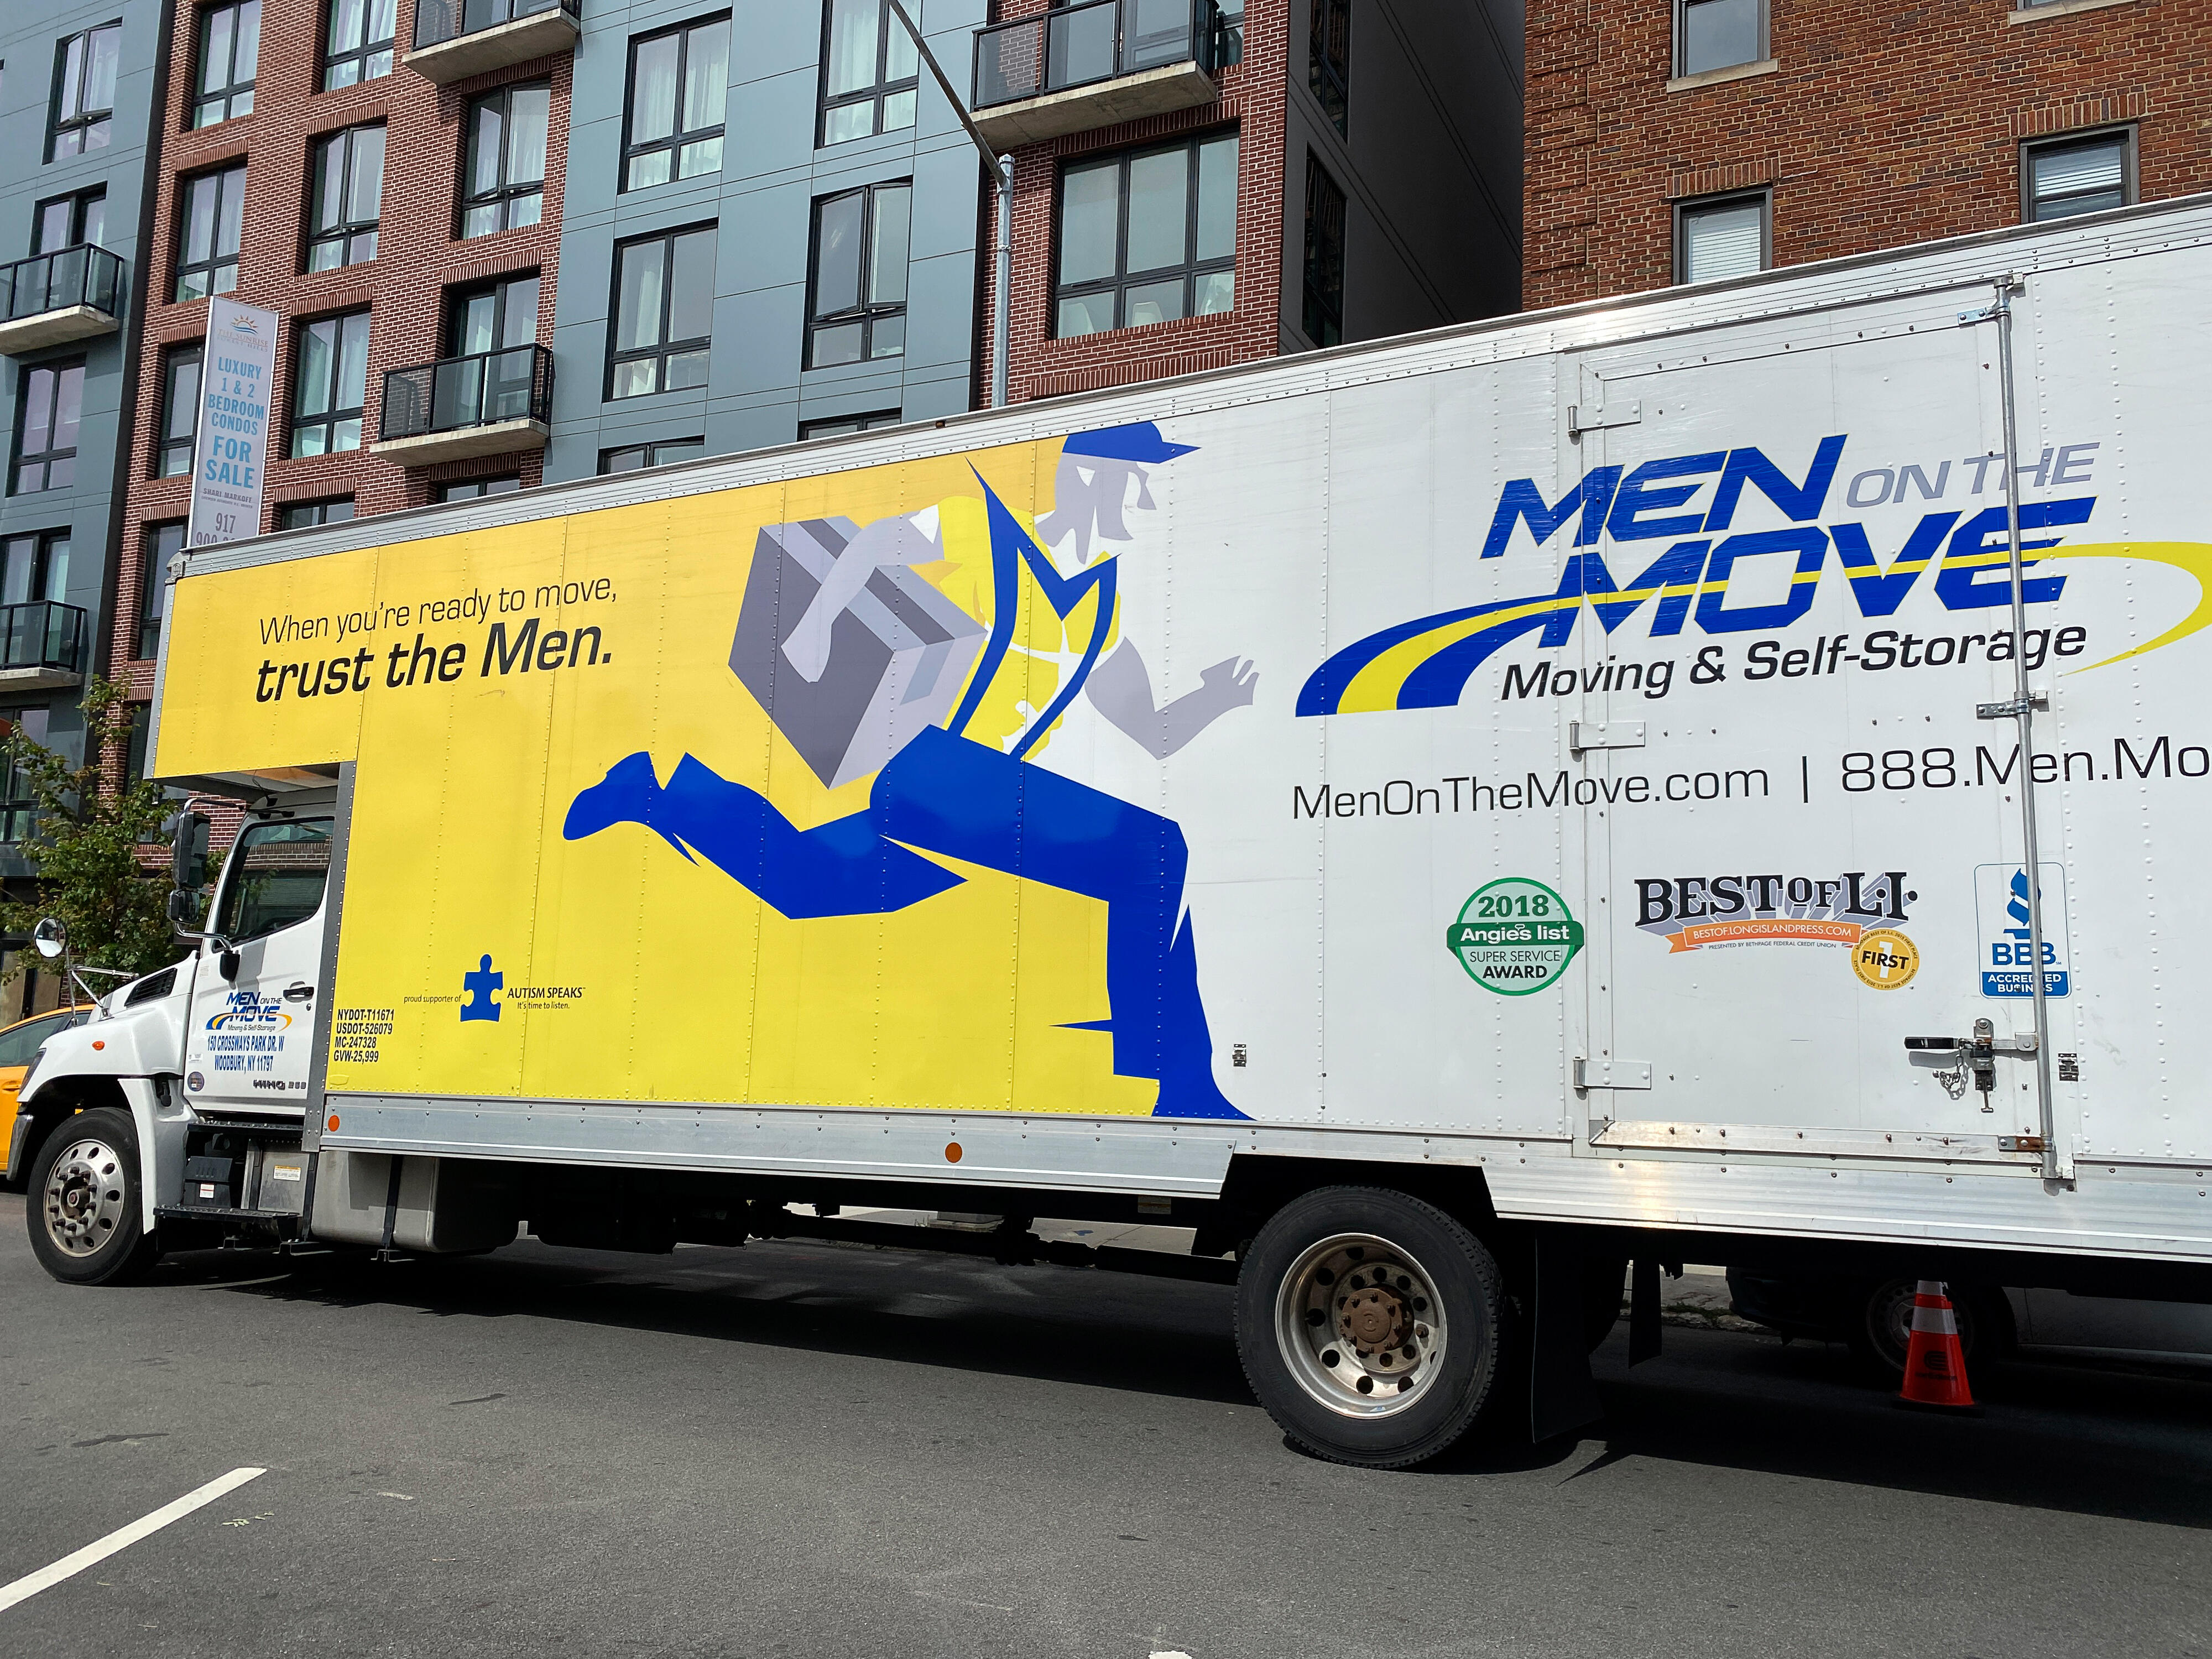 010-moving-truck-gettyimages-1273289396